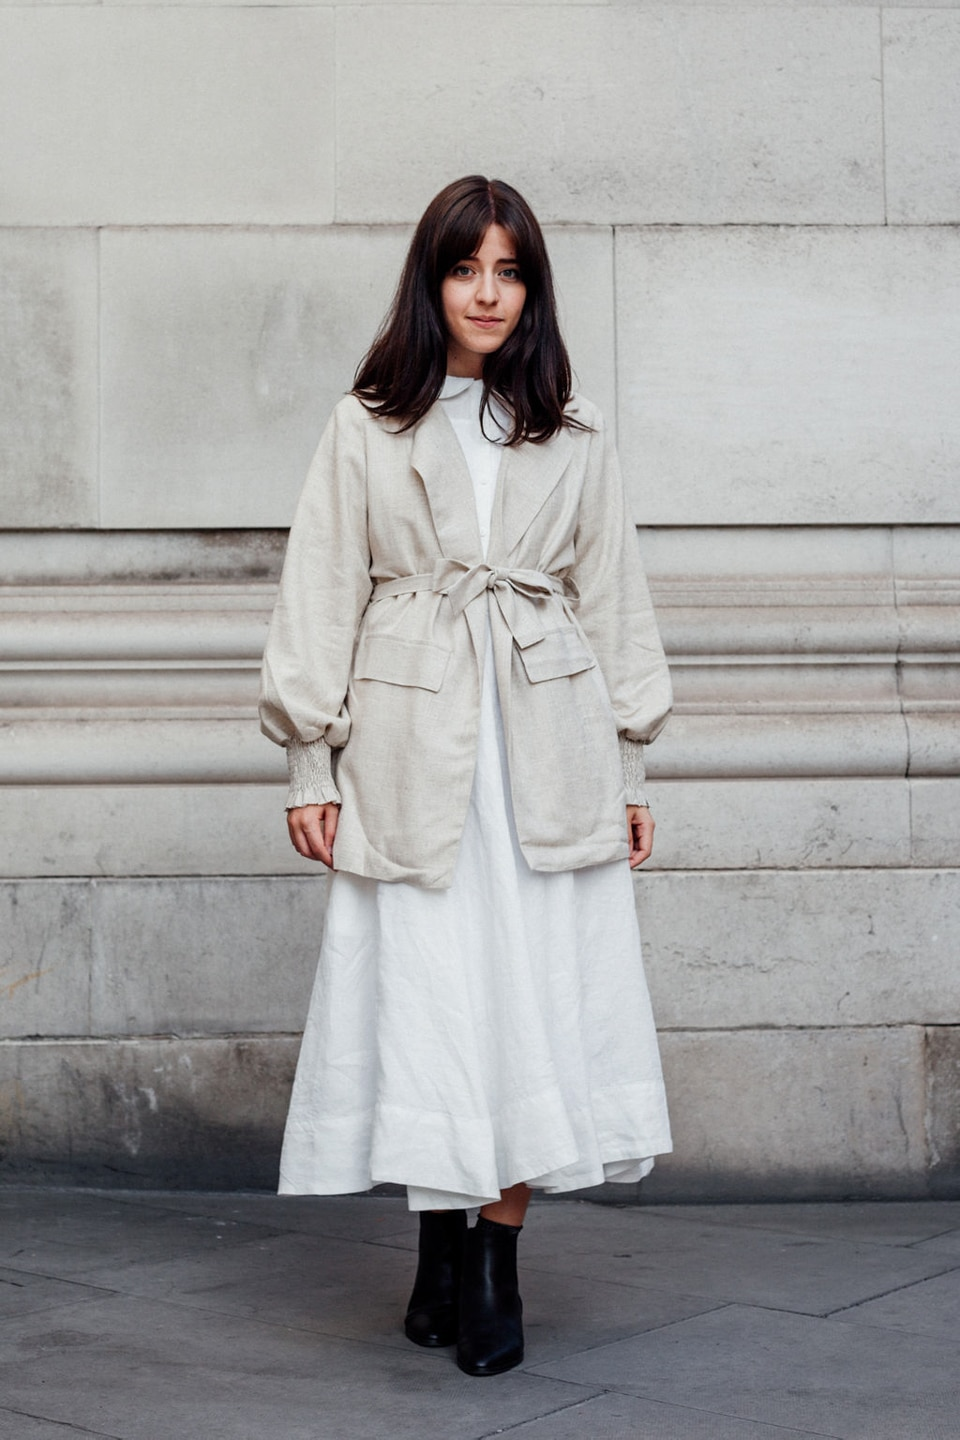 Besma wears white dress with cream linen jacket